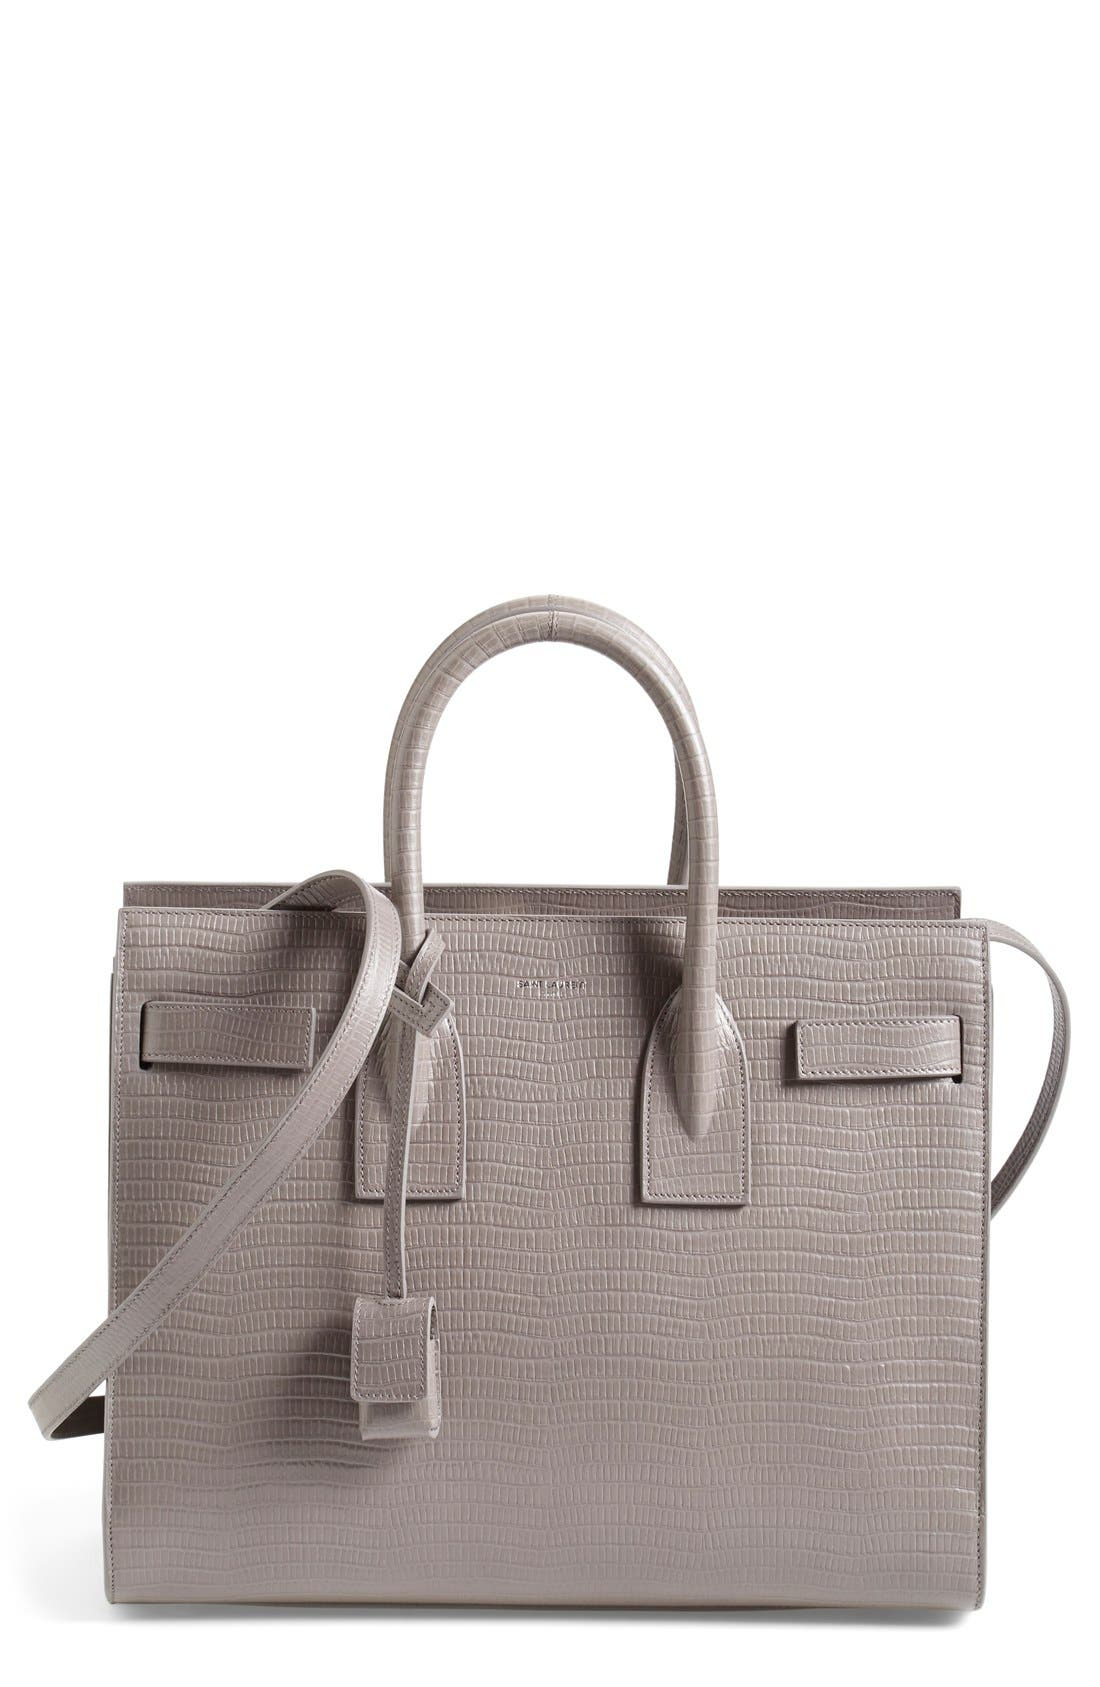 Alternate Image 1 Selected - Saint Laurent 'Small Sac de Jour' Snake Embossed Leather Tote